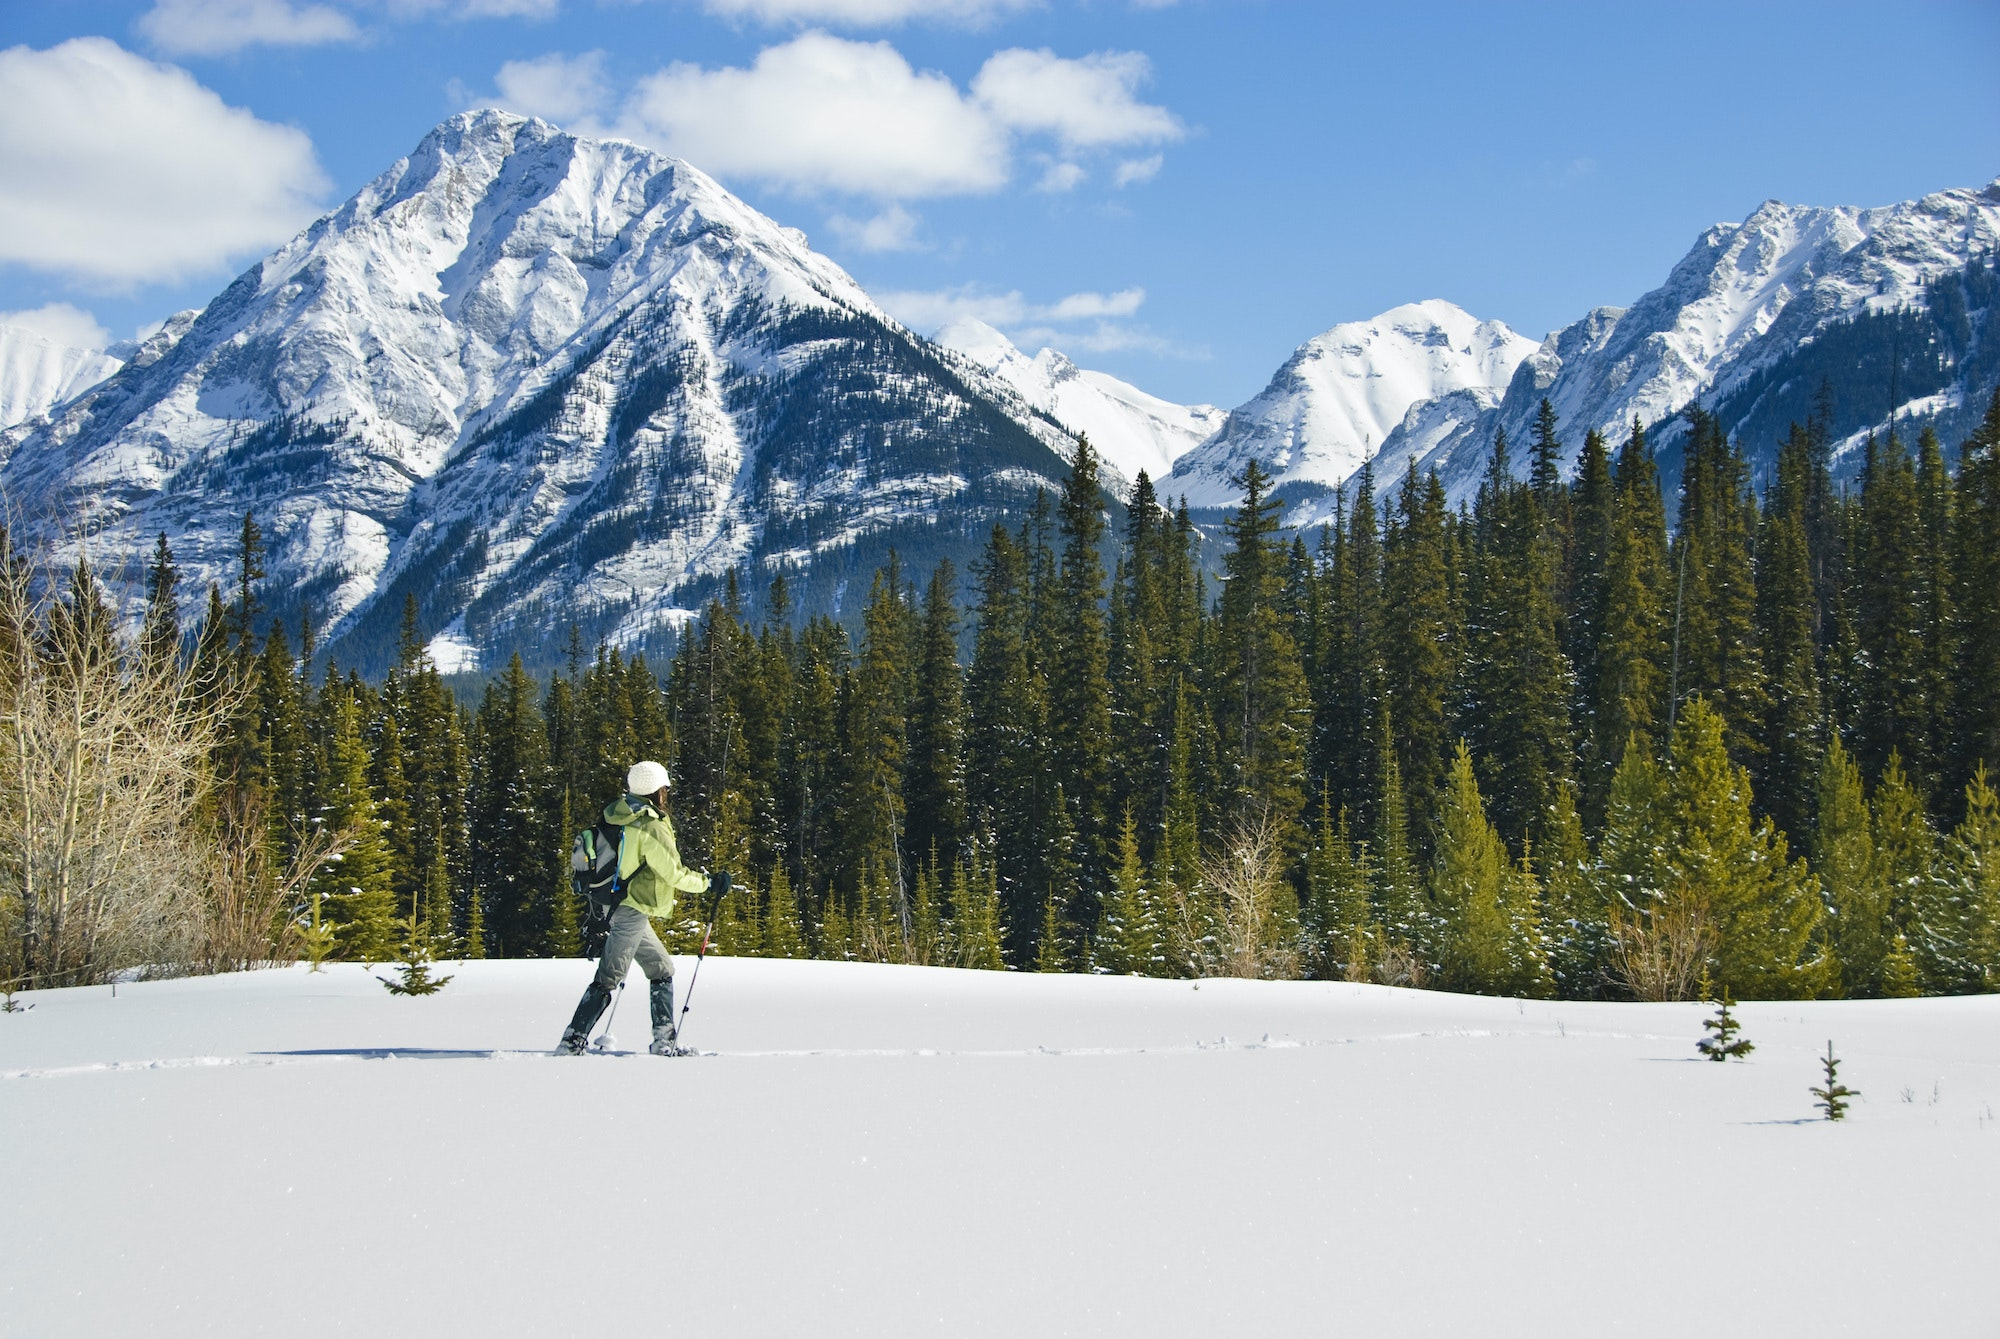 When Banff's ski slopes crowd up during winter, activities like snowshoeing offer more solitude.